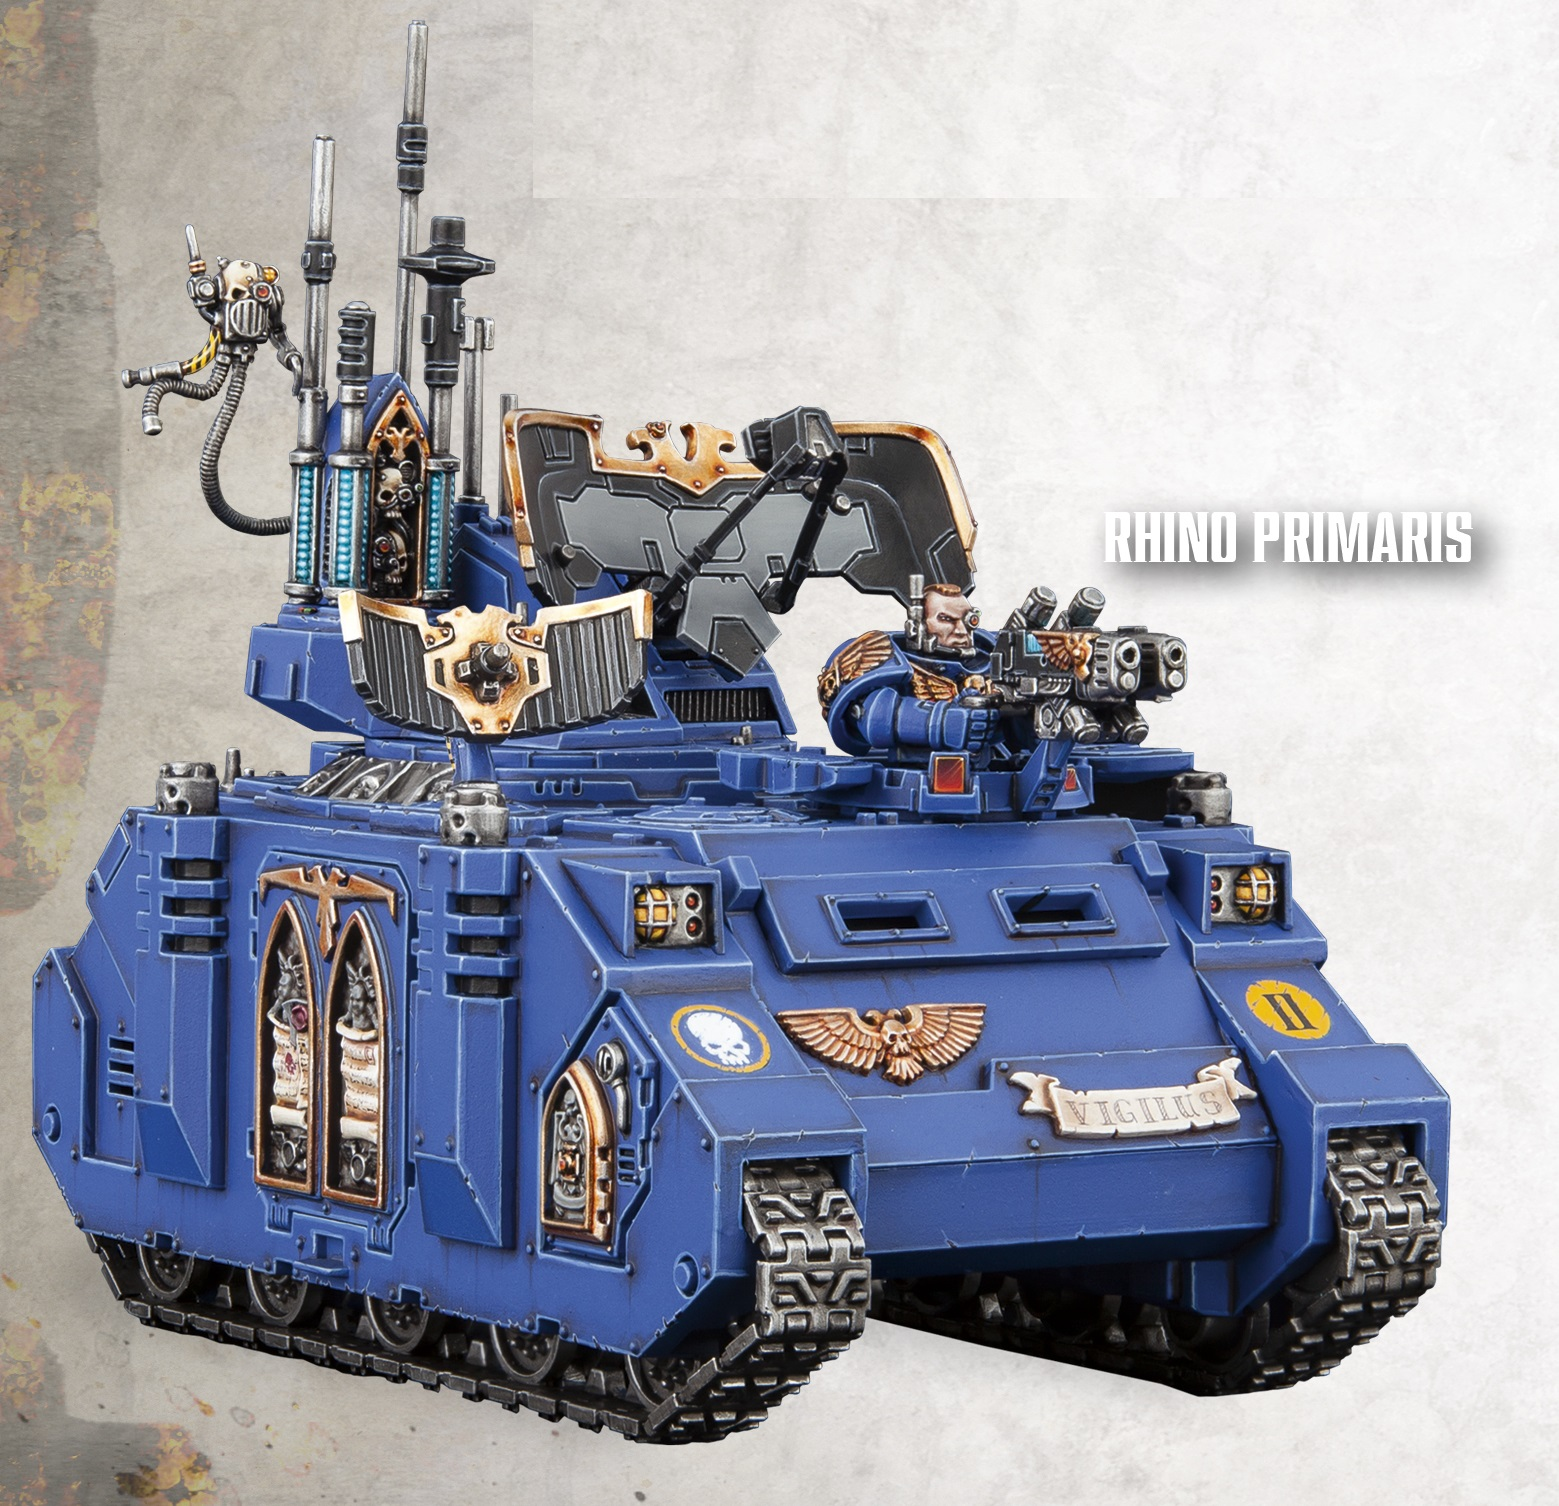 Space Marine Rhino Primaris Command Tank